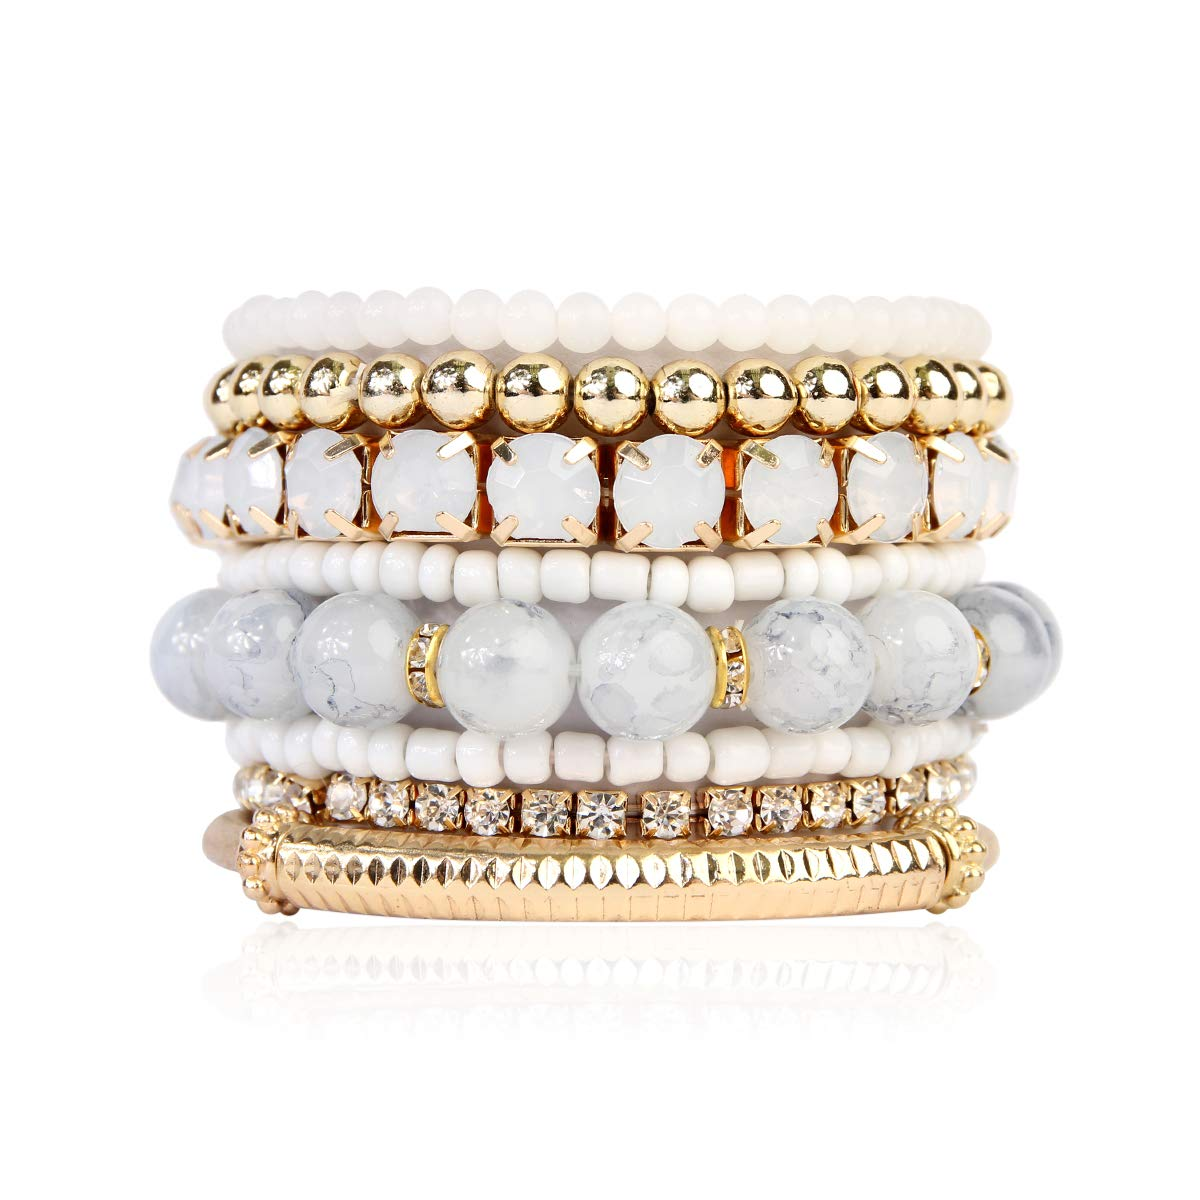 RIAH FASHION Multi Color Stretch Beaded Stackable Bracelets - Layering Bead Strand Statement Bangles (Original - Natural, 7) by RIAH FASHION